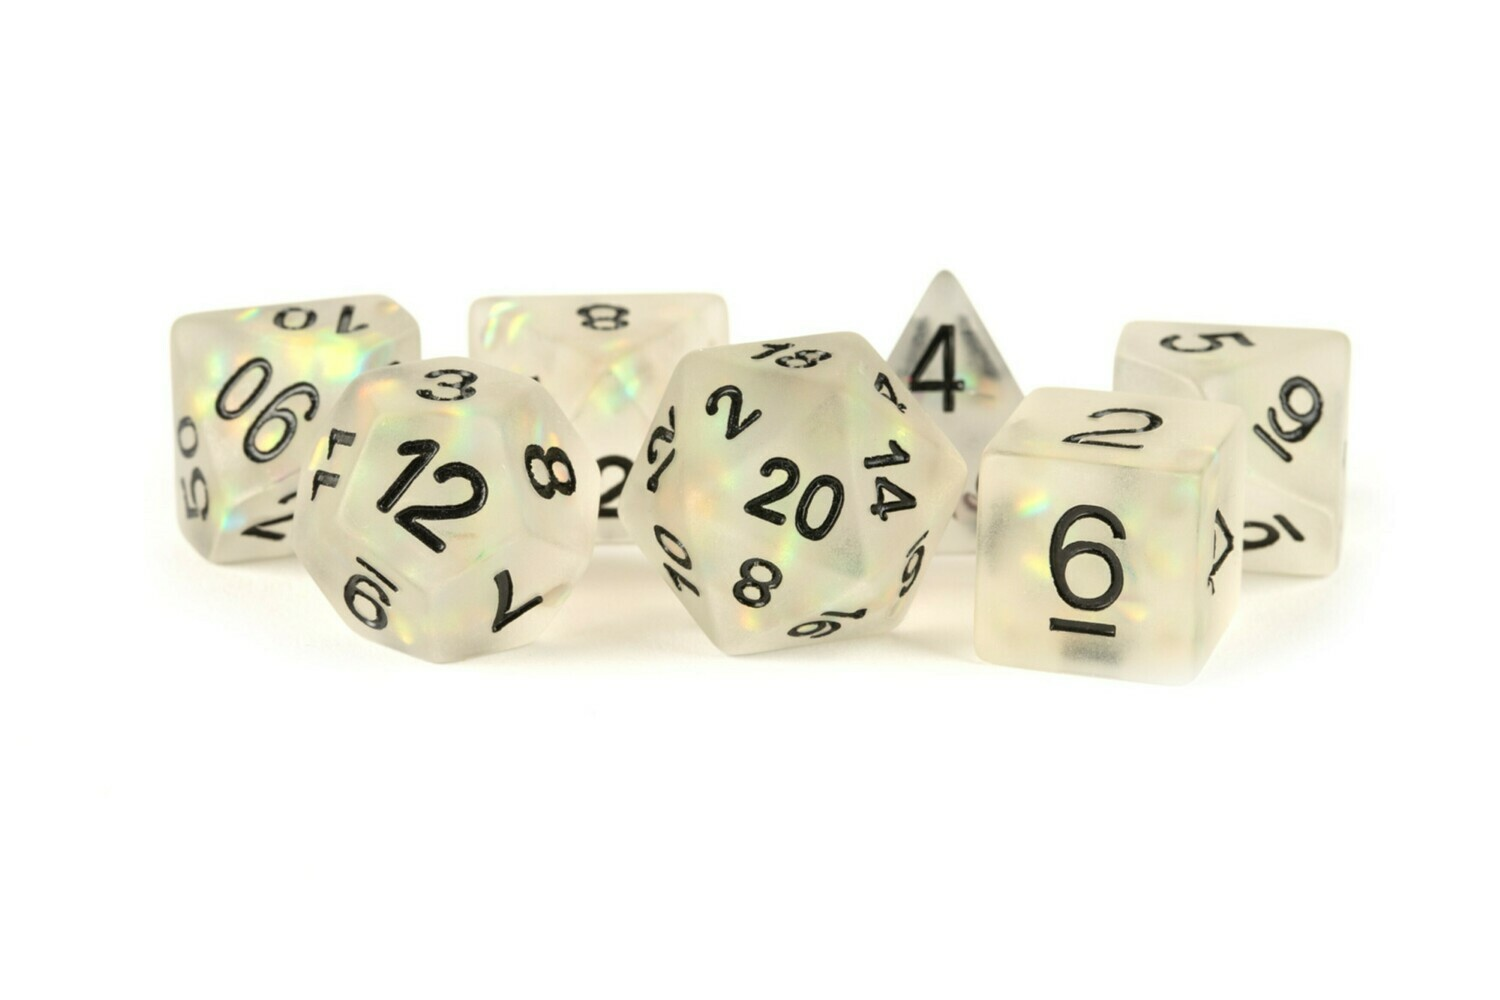 Icy Opal Clear with Silver Numbers 16mm Poly Dice Set 7 Die Polyhedral RPG Tabletop Gaming